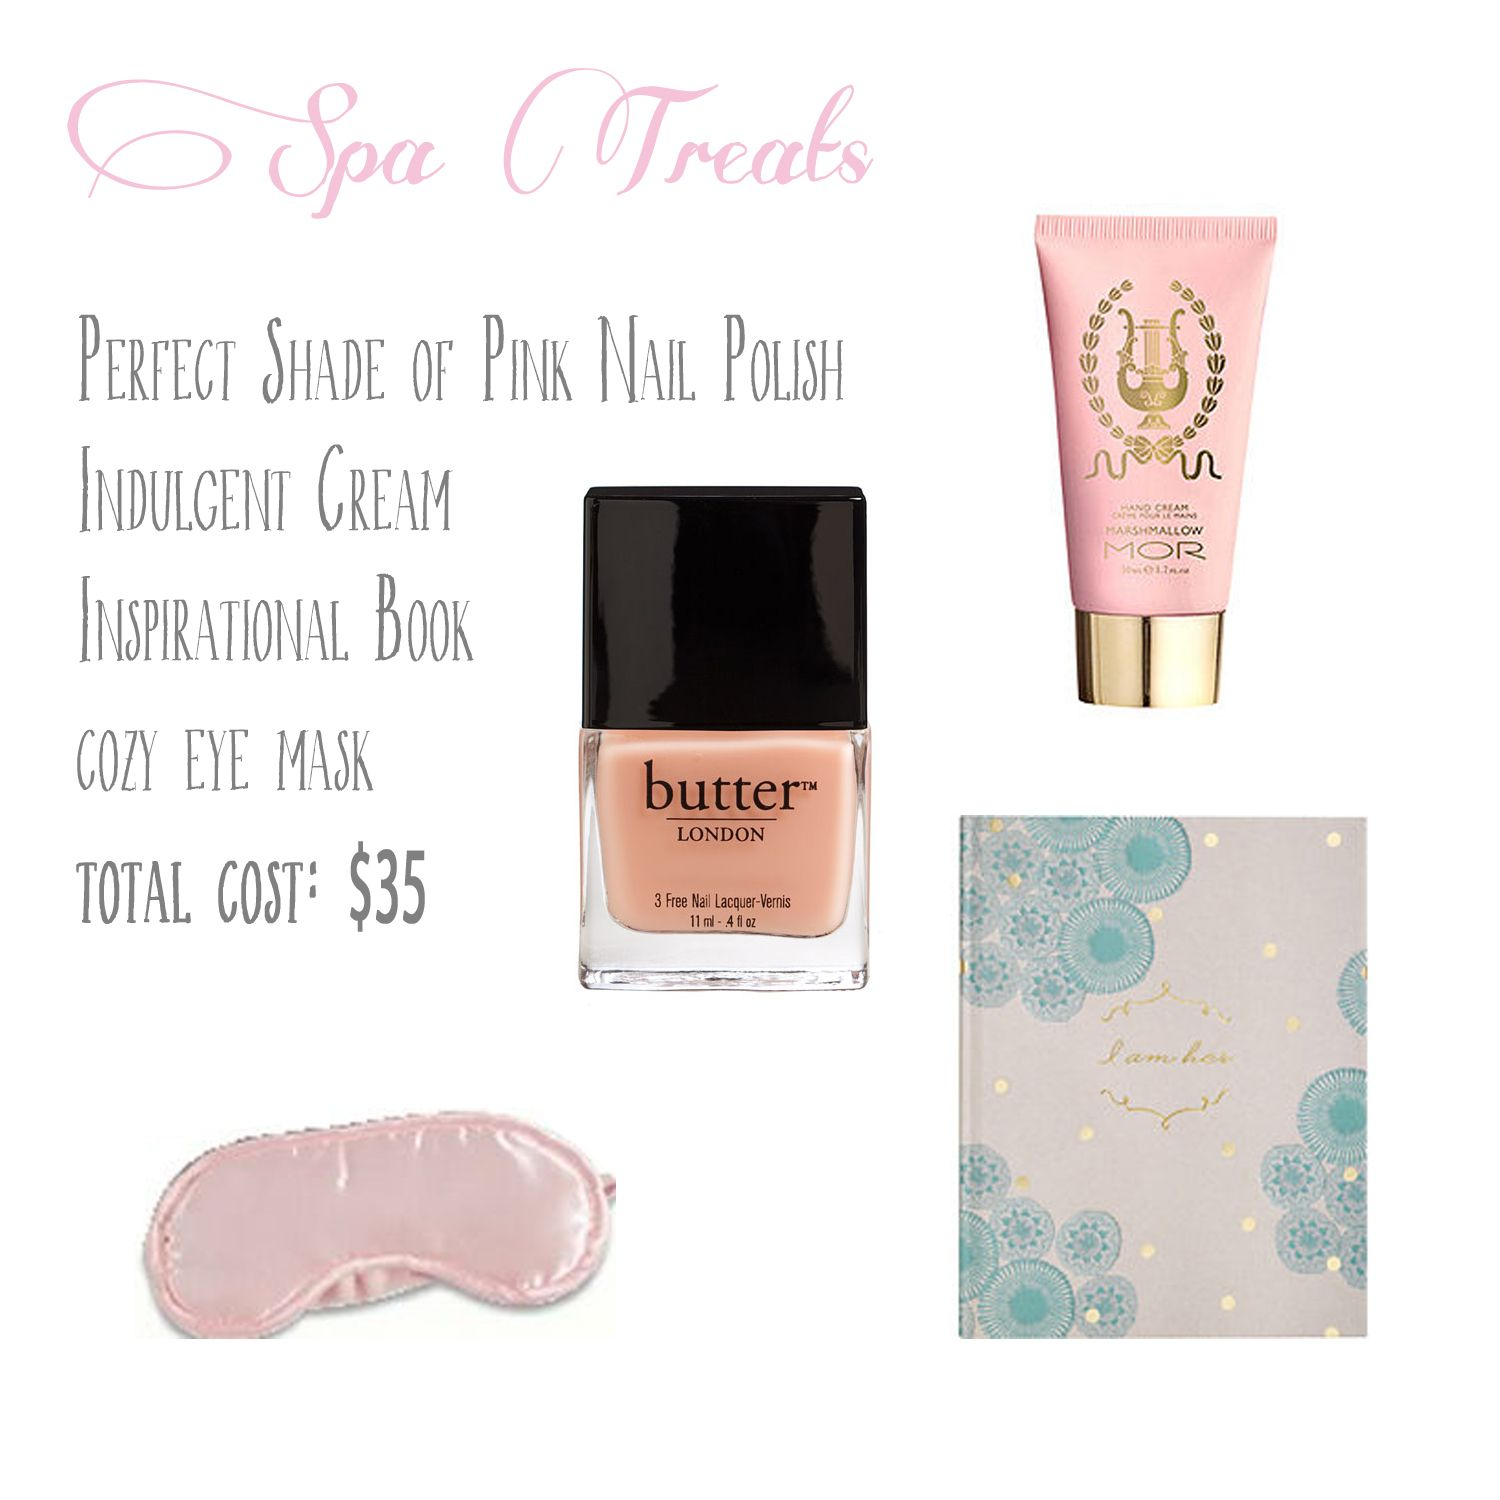 Wedding Attendants Gifts: Spa Gift // Bridesmaid Gifts